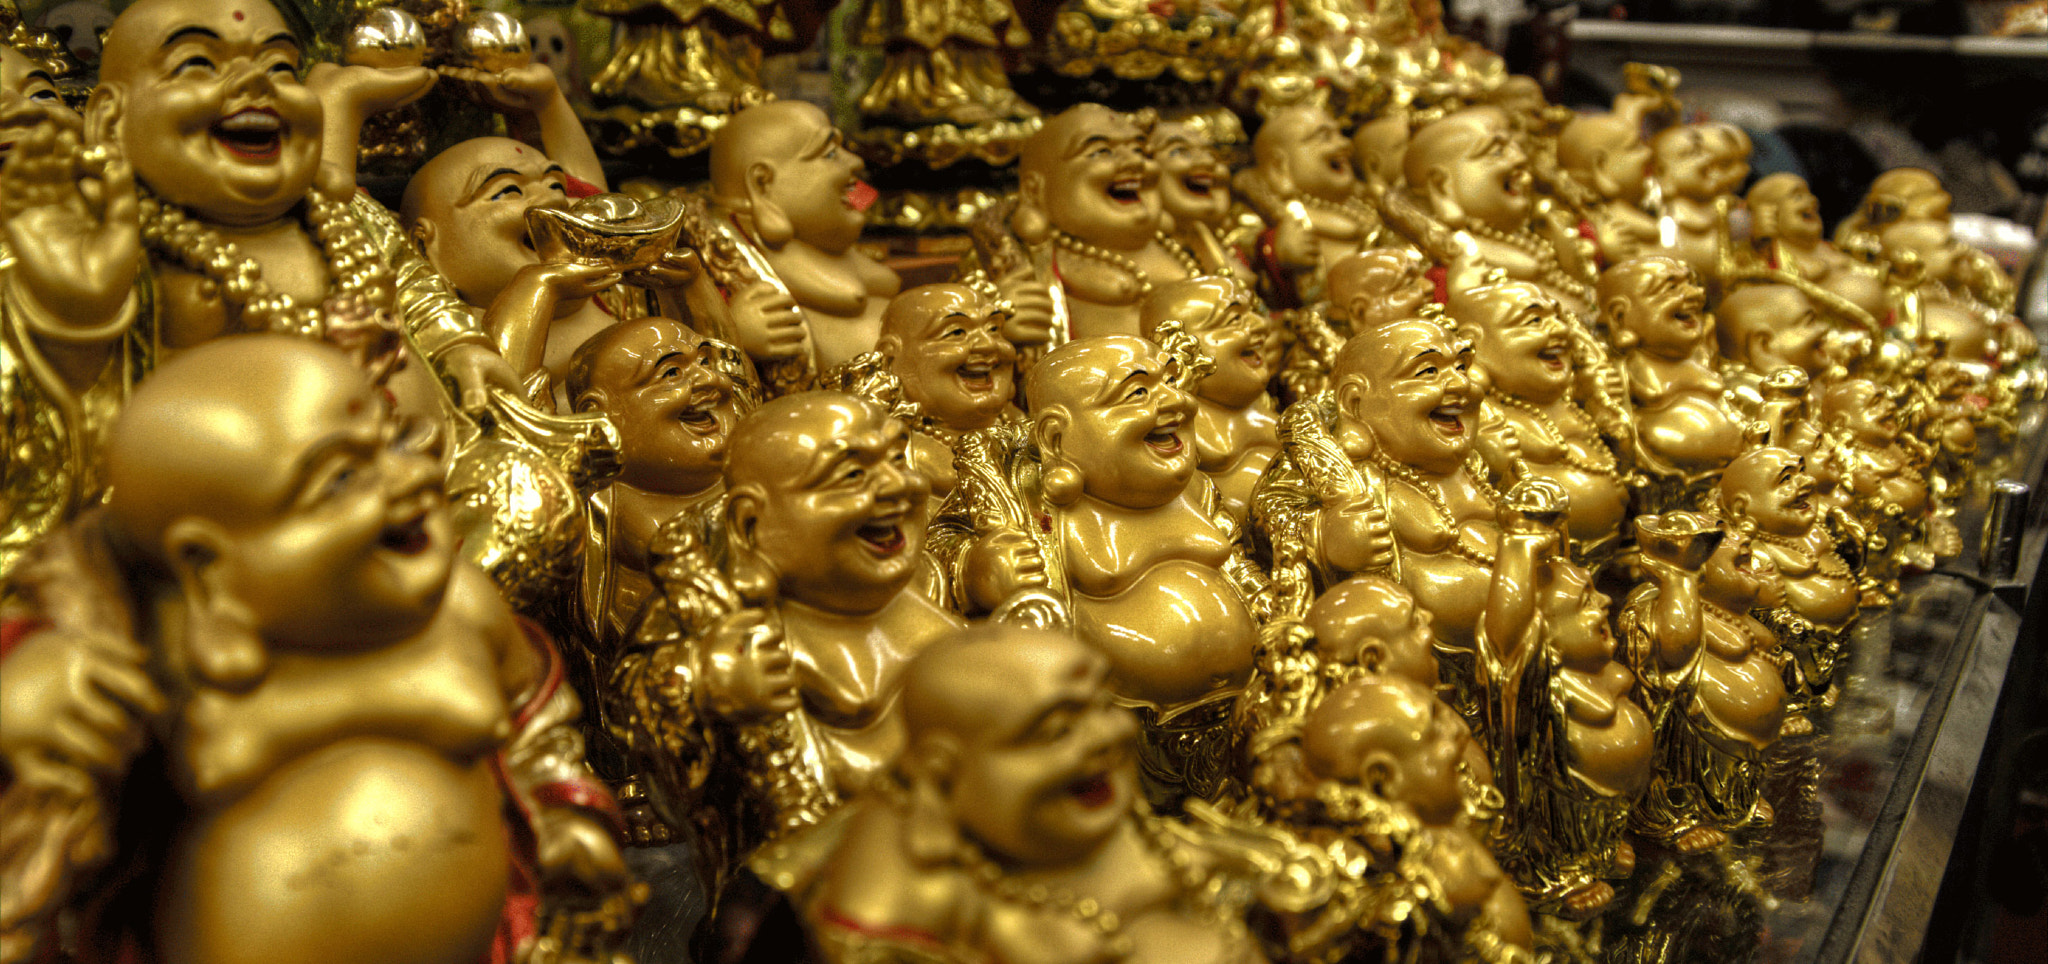 Photograph The store of a thousand Buddha's by Jon Weiland on 500px